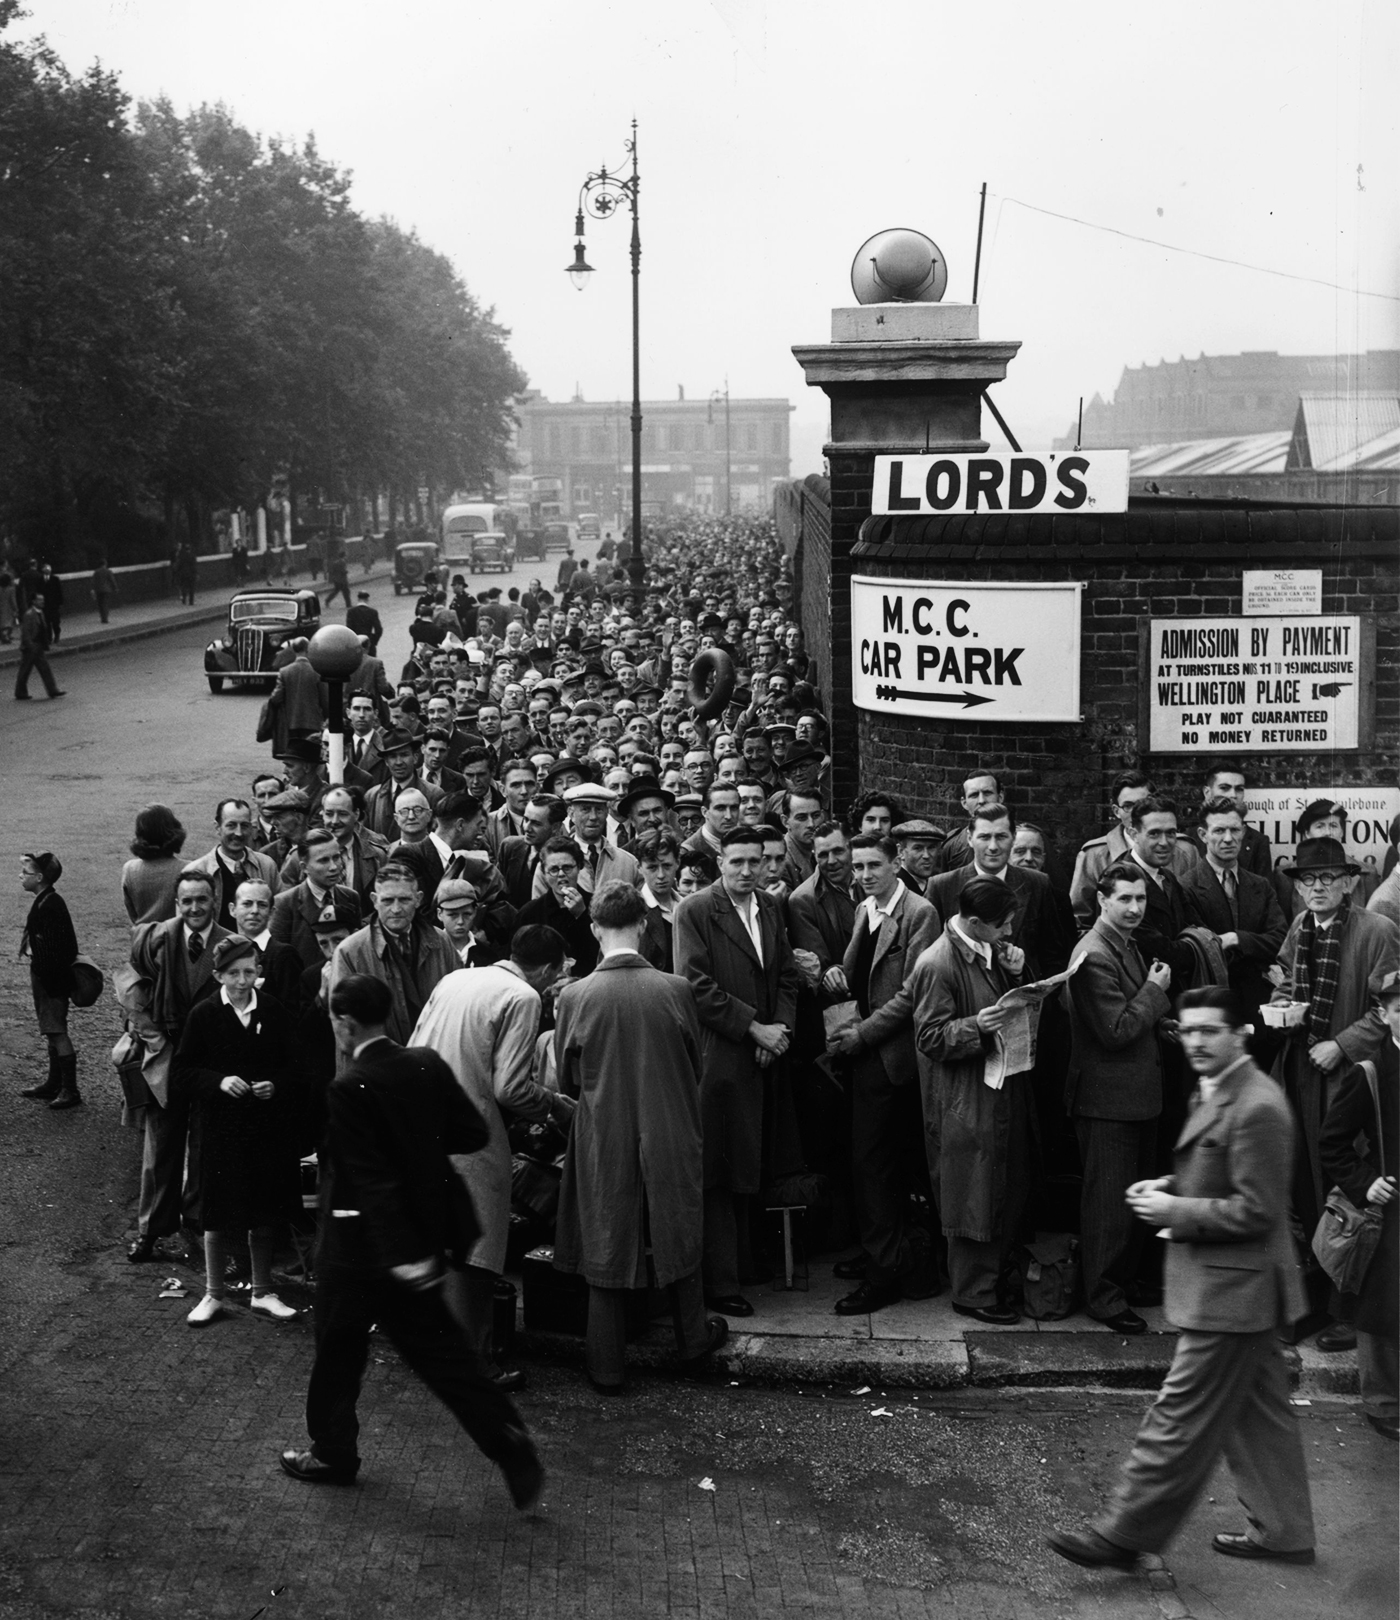 Crowds queue up outside Lord's for day two of the first Test